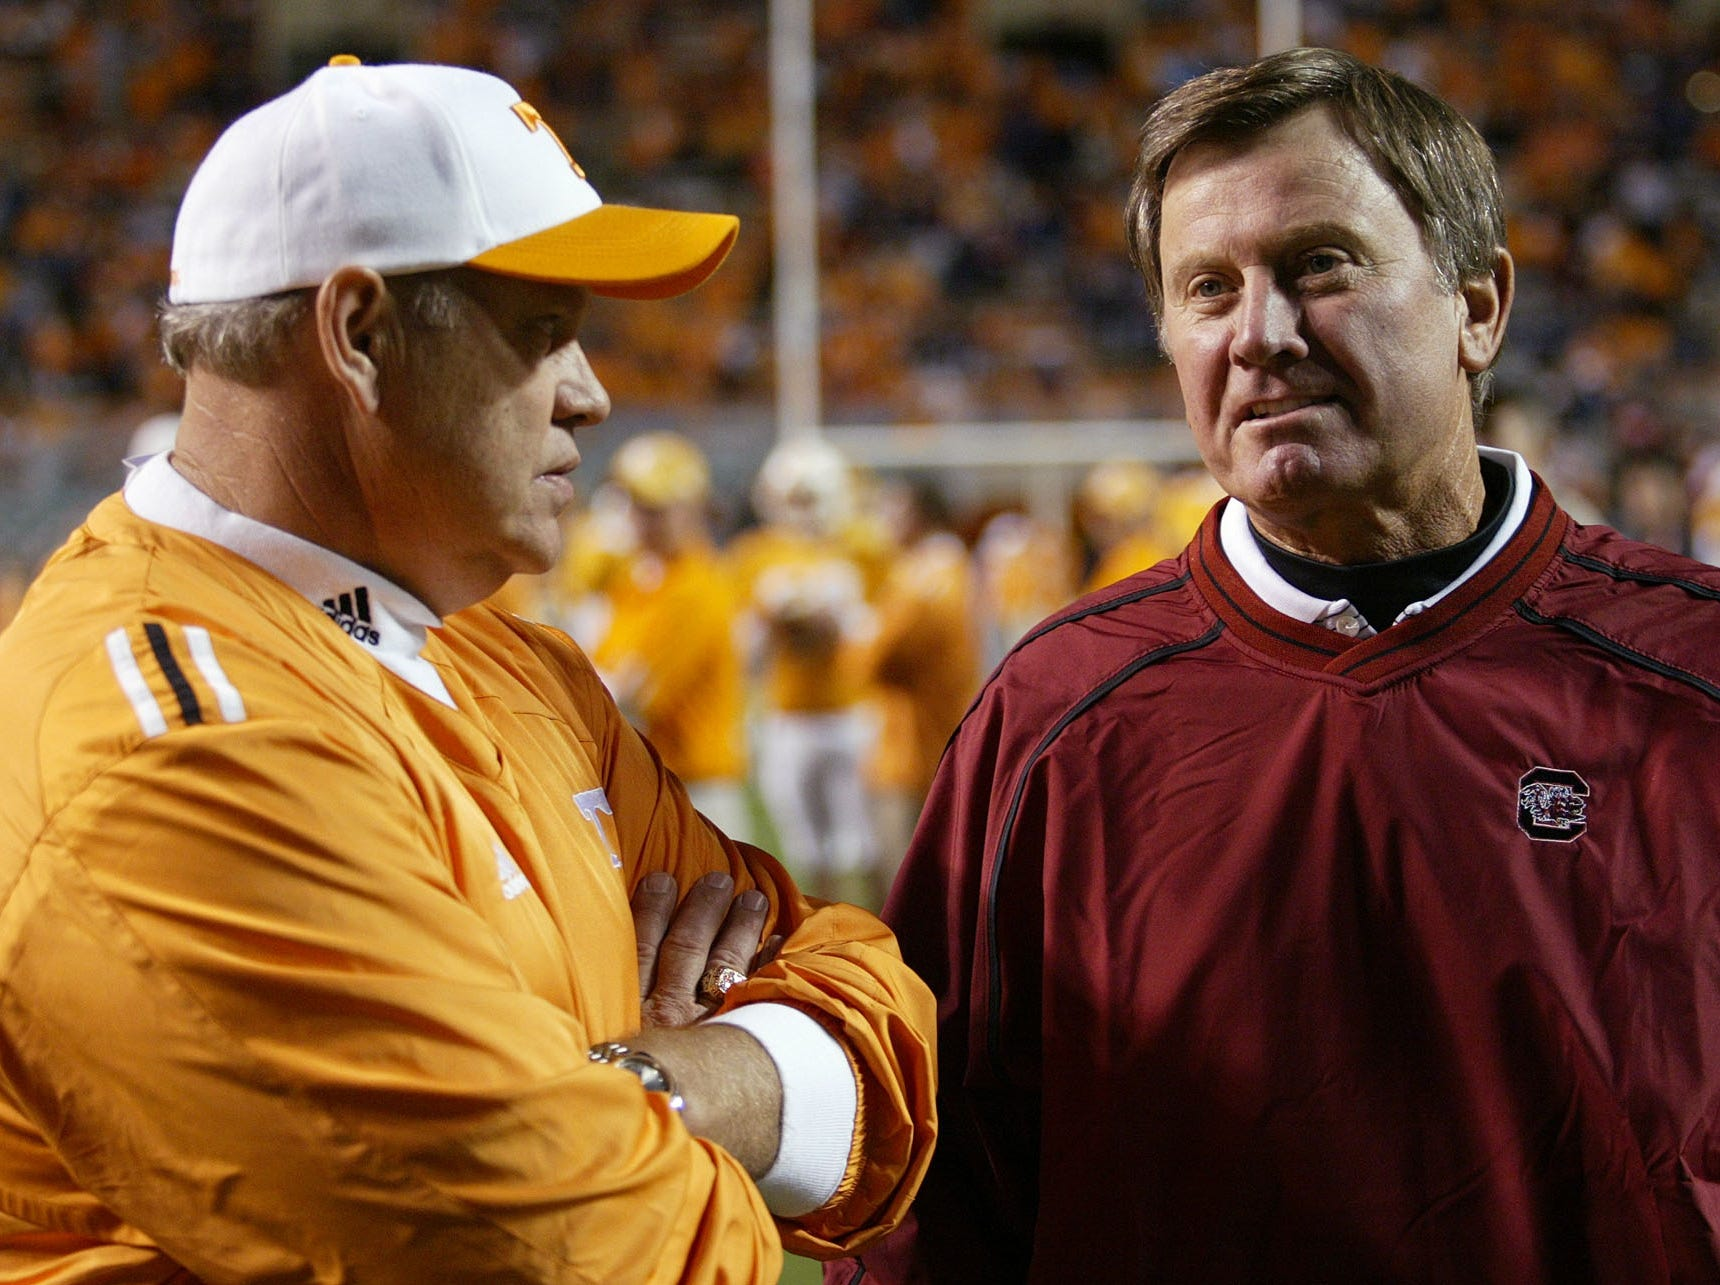 In this Oct. 29, 2005 file photo, South Carolina coach Steve Spurrier, right, talks with Tennessee coach before an NCAA college football game in Knoxville, Tenn. Through most of the 1990s, games between Phillip Fulmer's Tennessee Volunteers and Steve Spurrier's Florida Gators helped decide Southeastern Conference championship and national titles.  On Saturday, the two winningest active coaches in the SEC will be playing for the inside track to fourth place in their division.